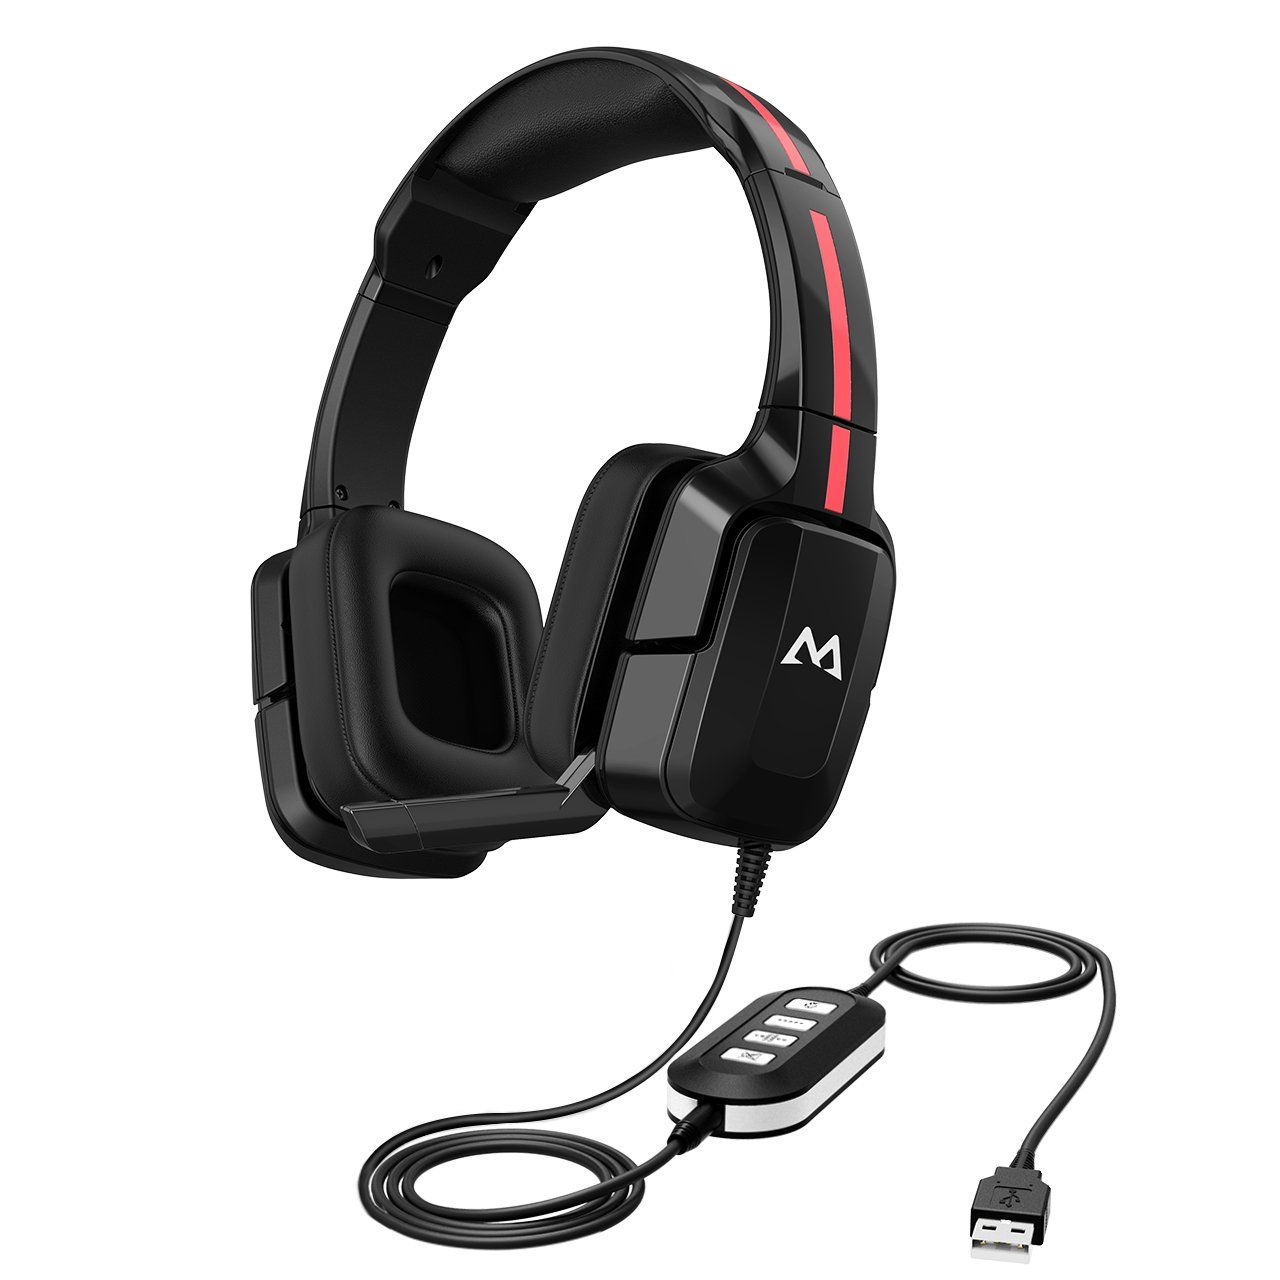 Mpow Eg2 Gaming Headset For Pc Xbox One Ps4 Lightweight Wired Gaming Headphones Laptop Computer 3 5mm Usb Headset Headset Gaming Headphones Usb Headphones